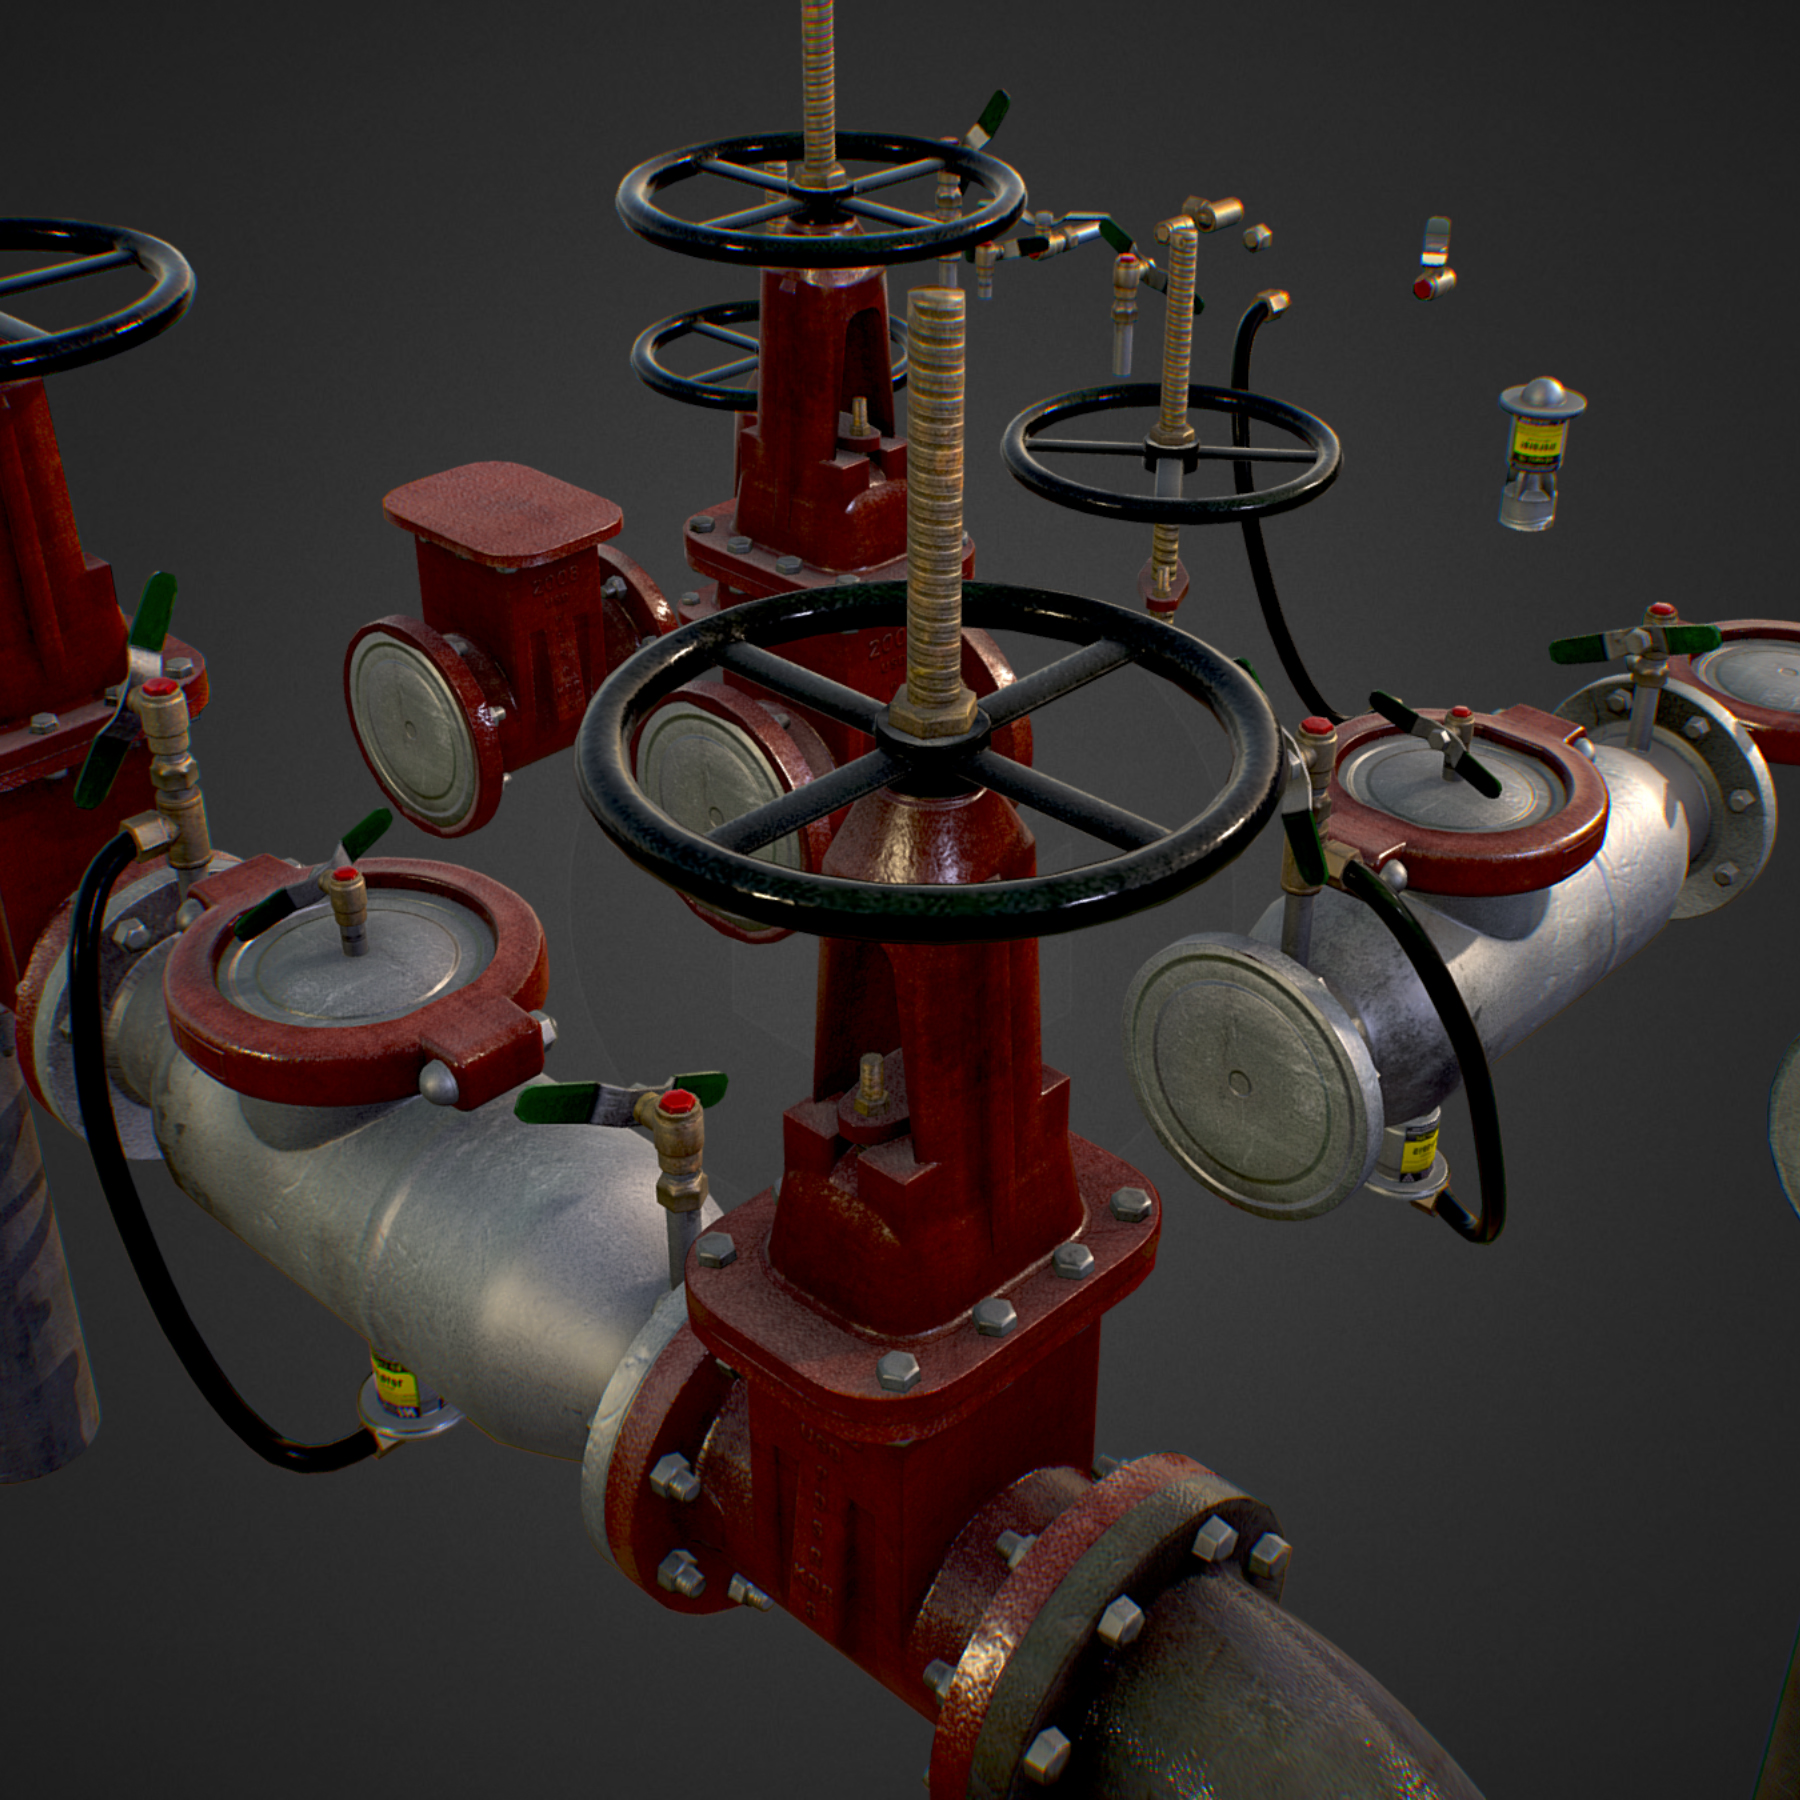 low poly game backflow water pipe constructor 3d model max  fbx ma mb tga targa icb vda vst pix obj 272462